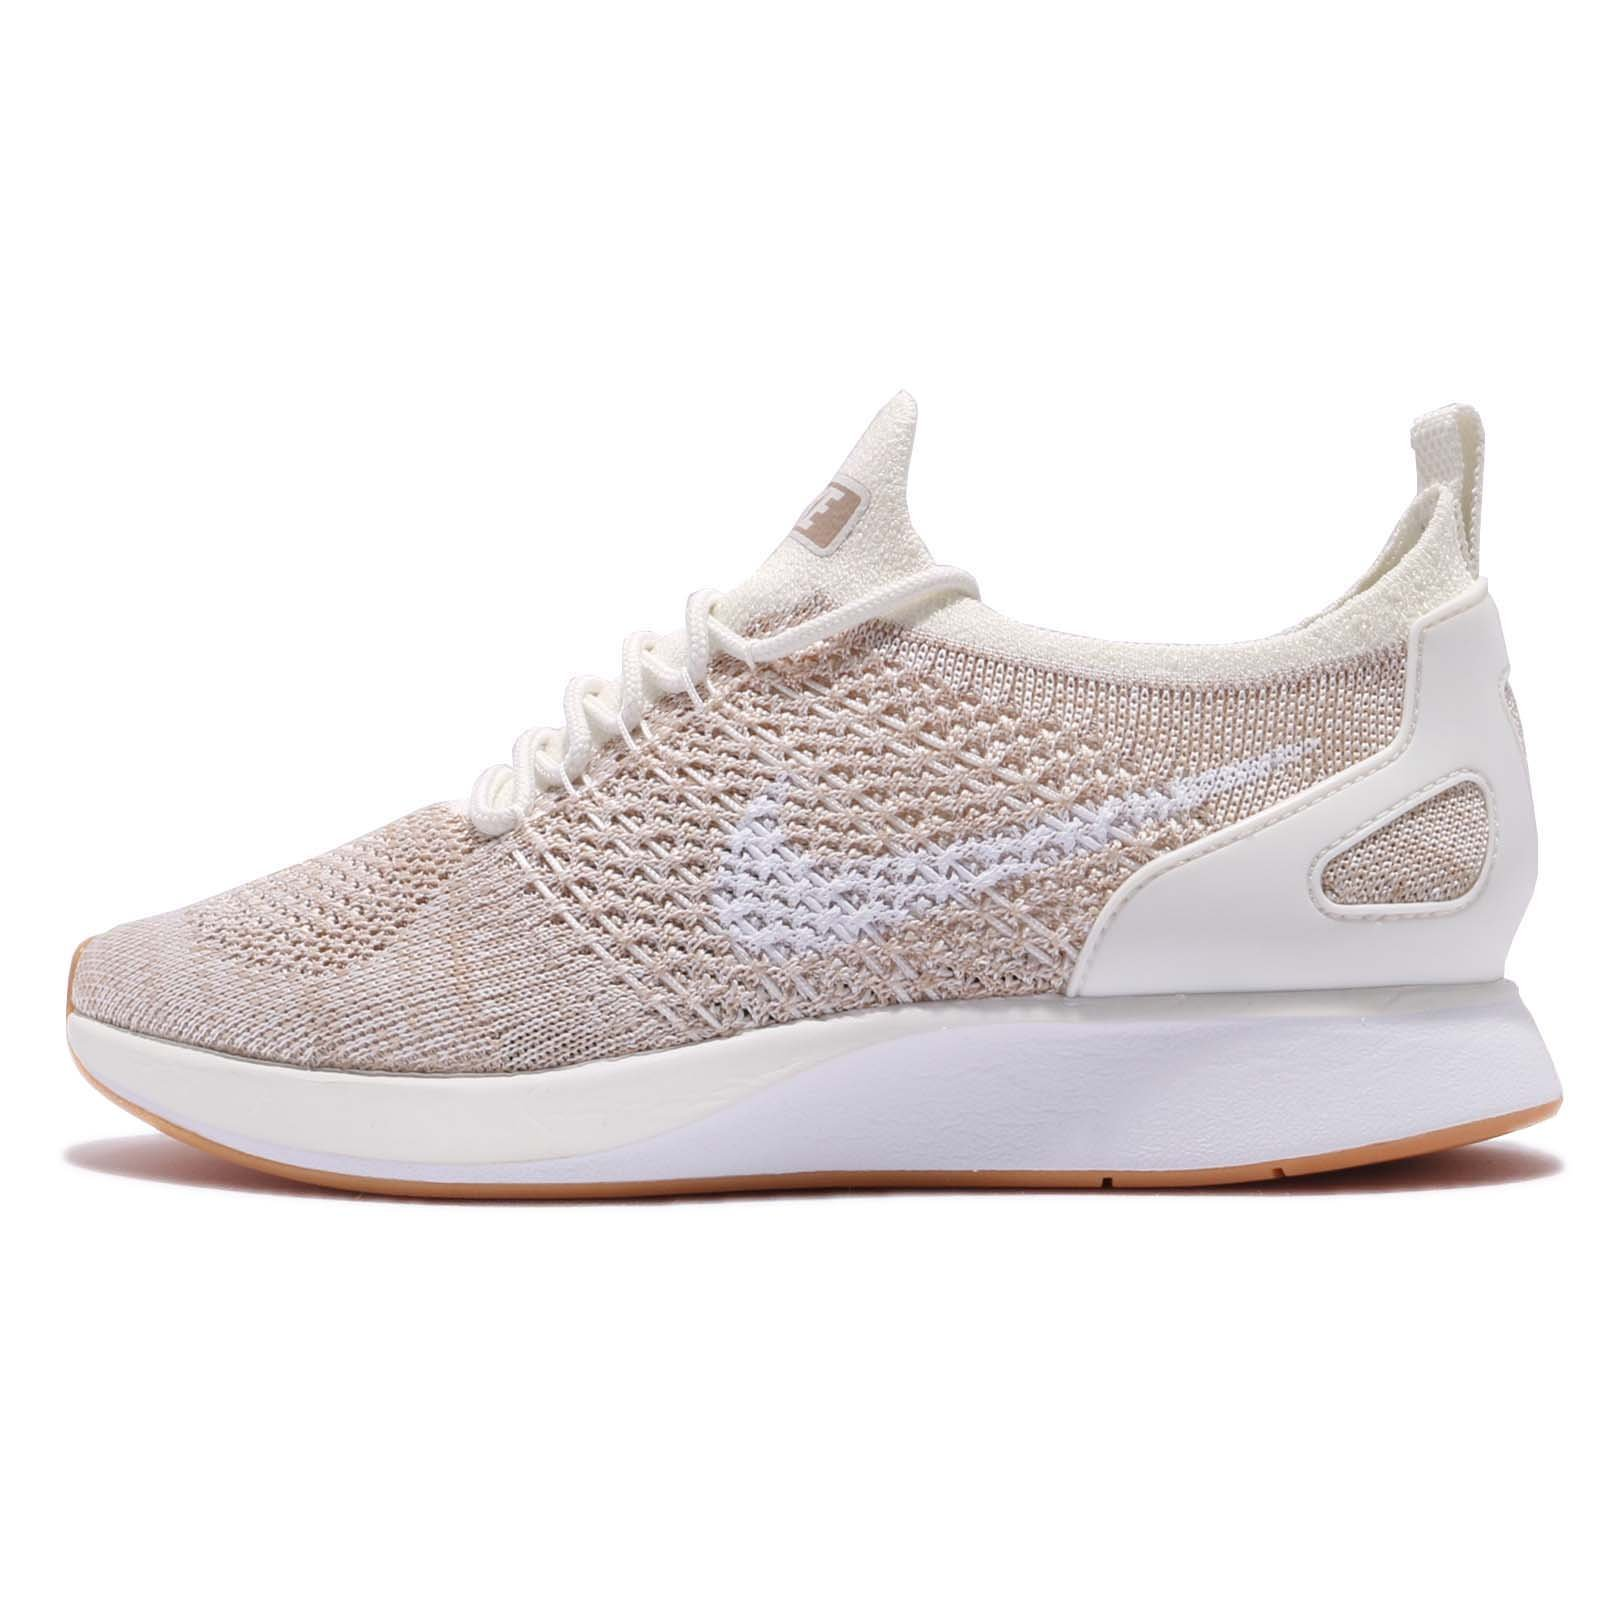 c4f4601a3a13f Galleon - Nike Air Zoom Mariah Flyknit Racer Womens s Shoe Sail White Gum  Aa0521-100 (7 B(M) US)